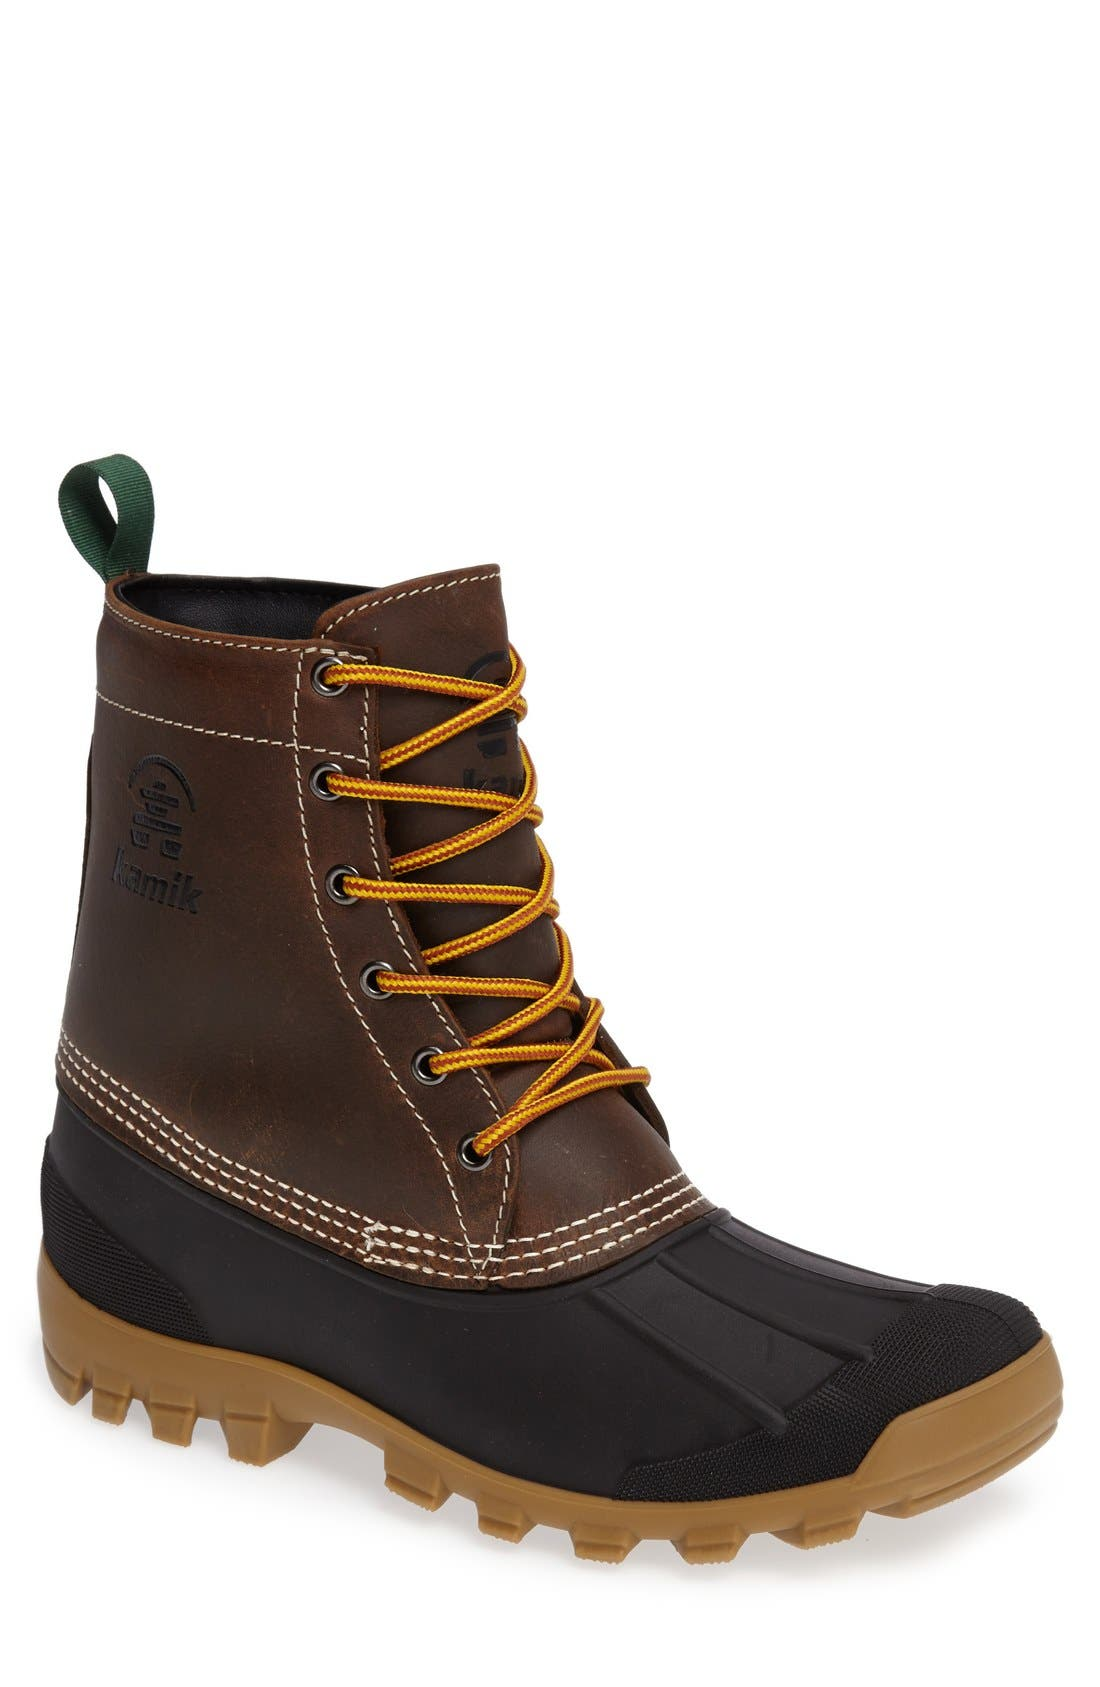 Yukon6 Waterproof Work Boot,                         Main,                         color, DARK BROWN LEATHER